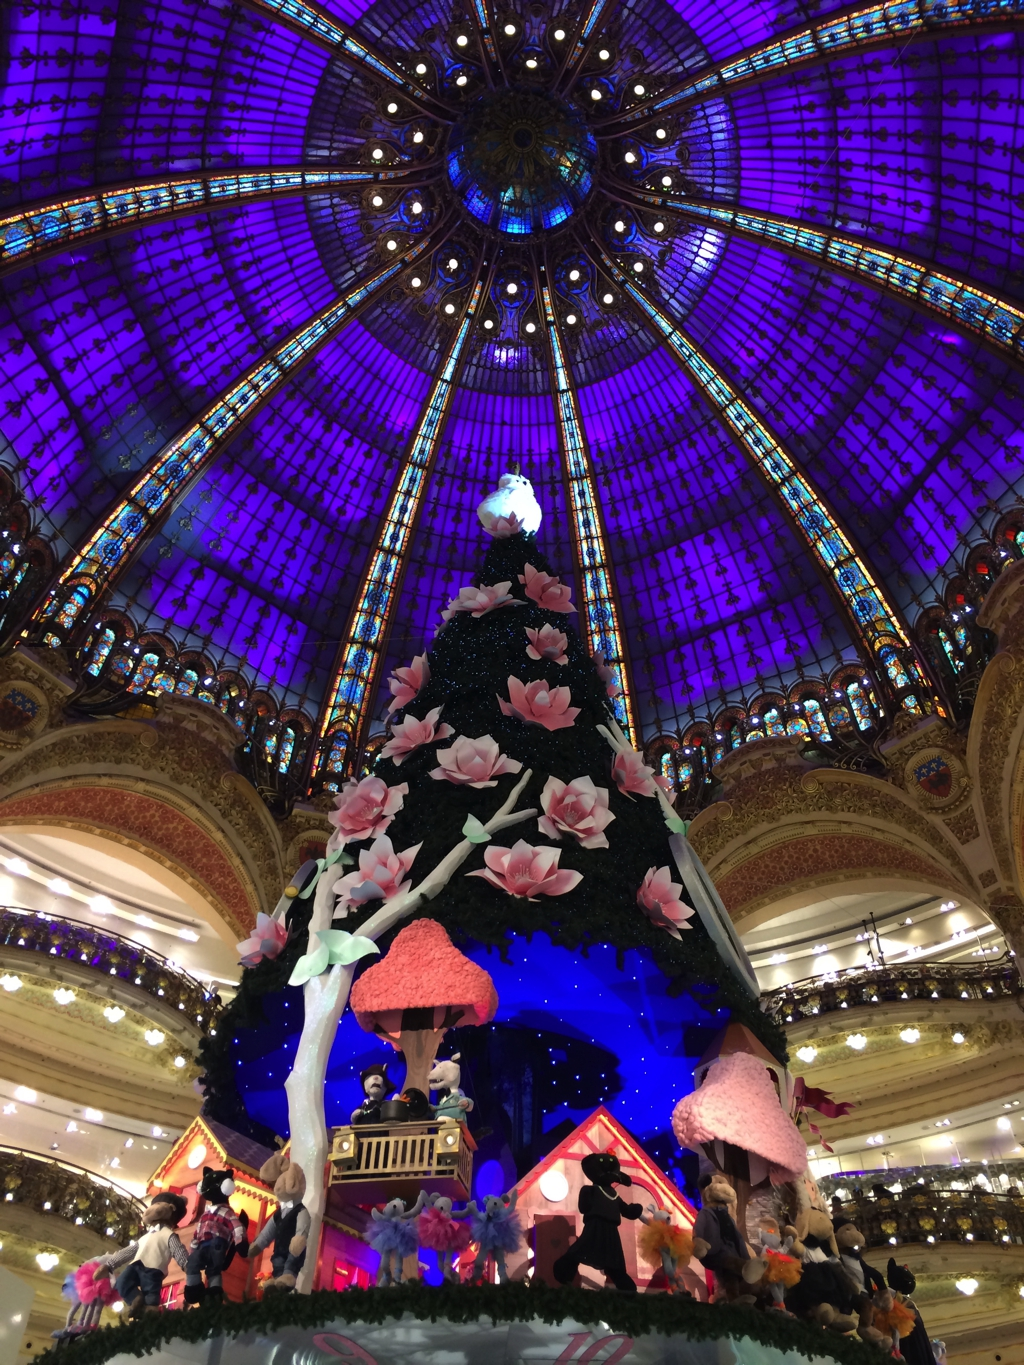 Galleries Lafayette, Paris. By Packing my Suitcase.